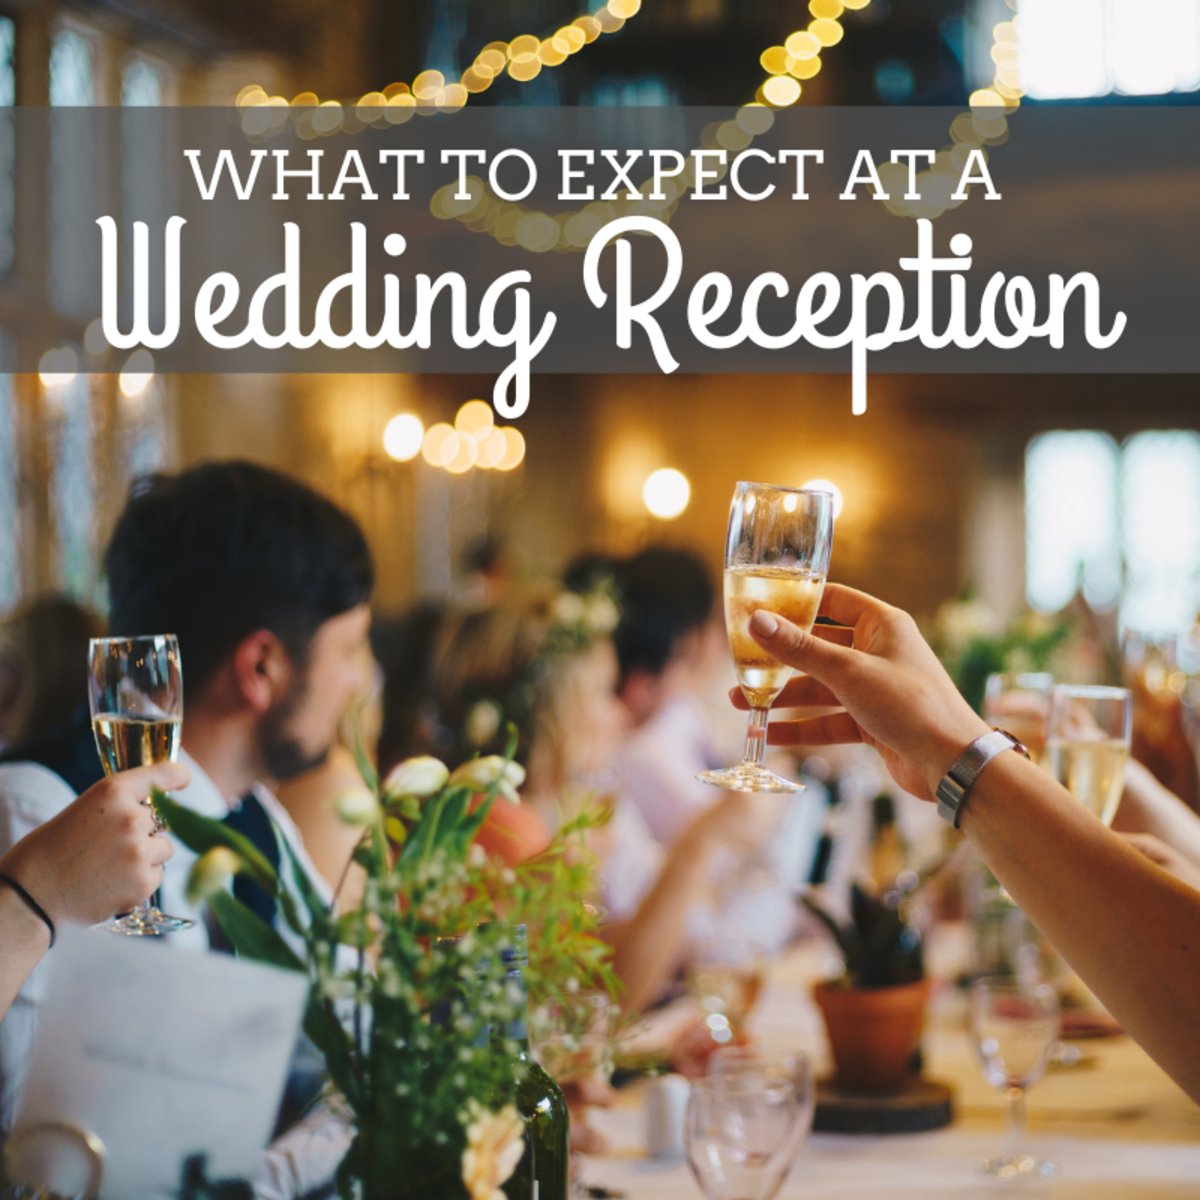 If you've never attended a wedding reception before, you may be wondering just what to expect from the experience.